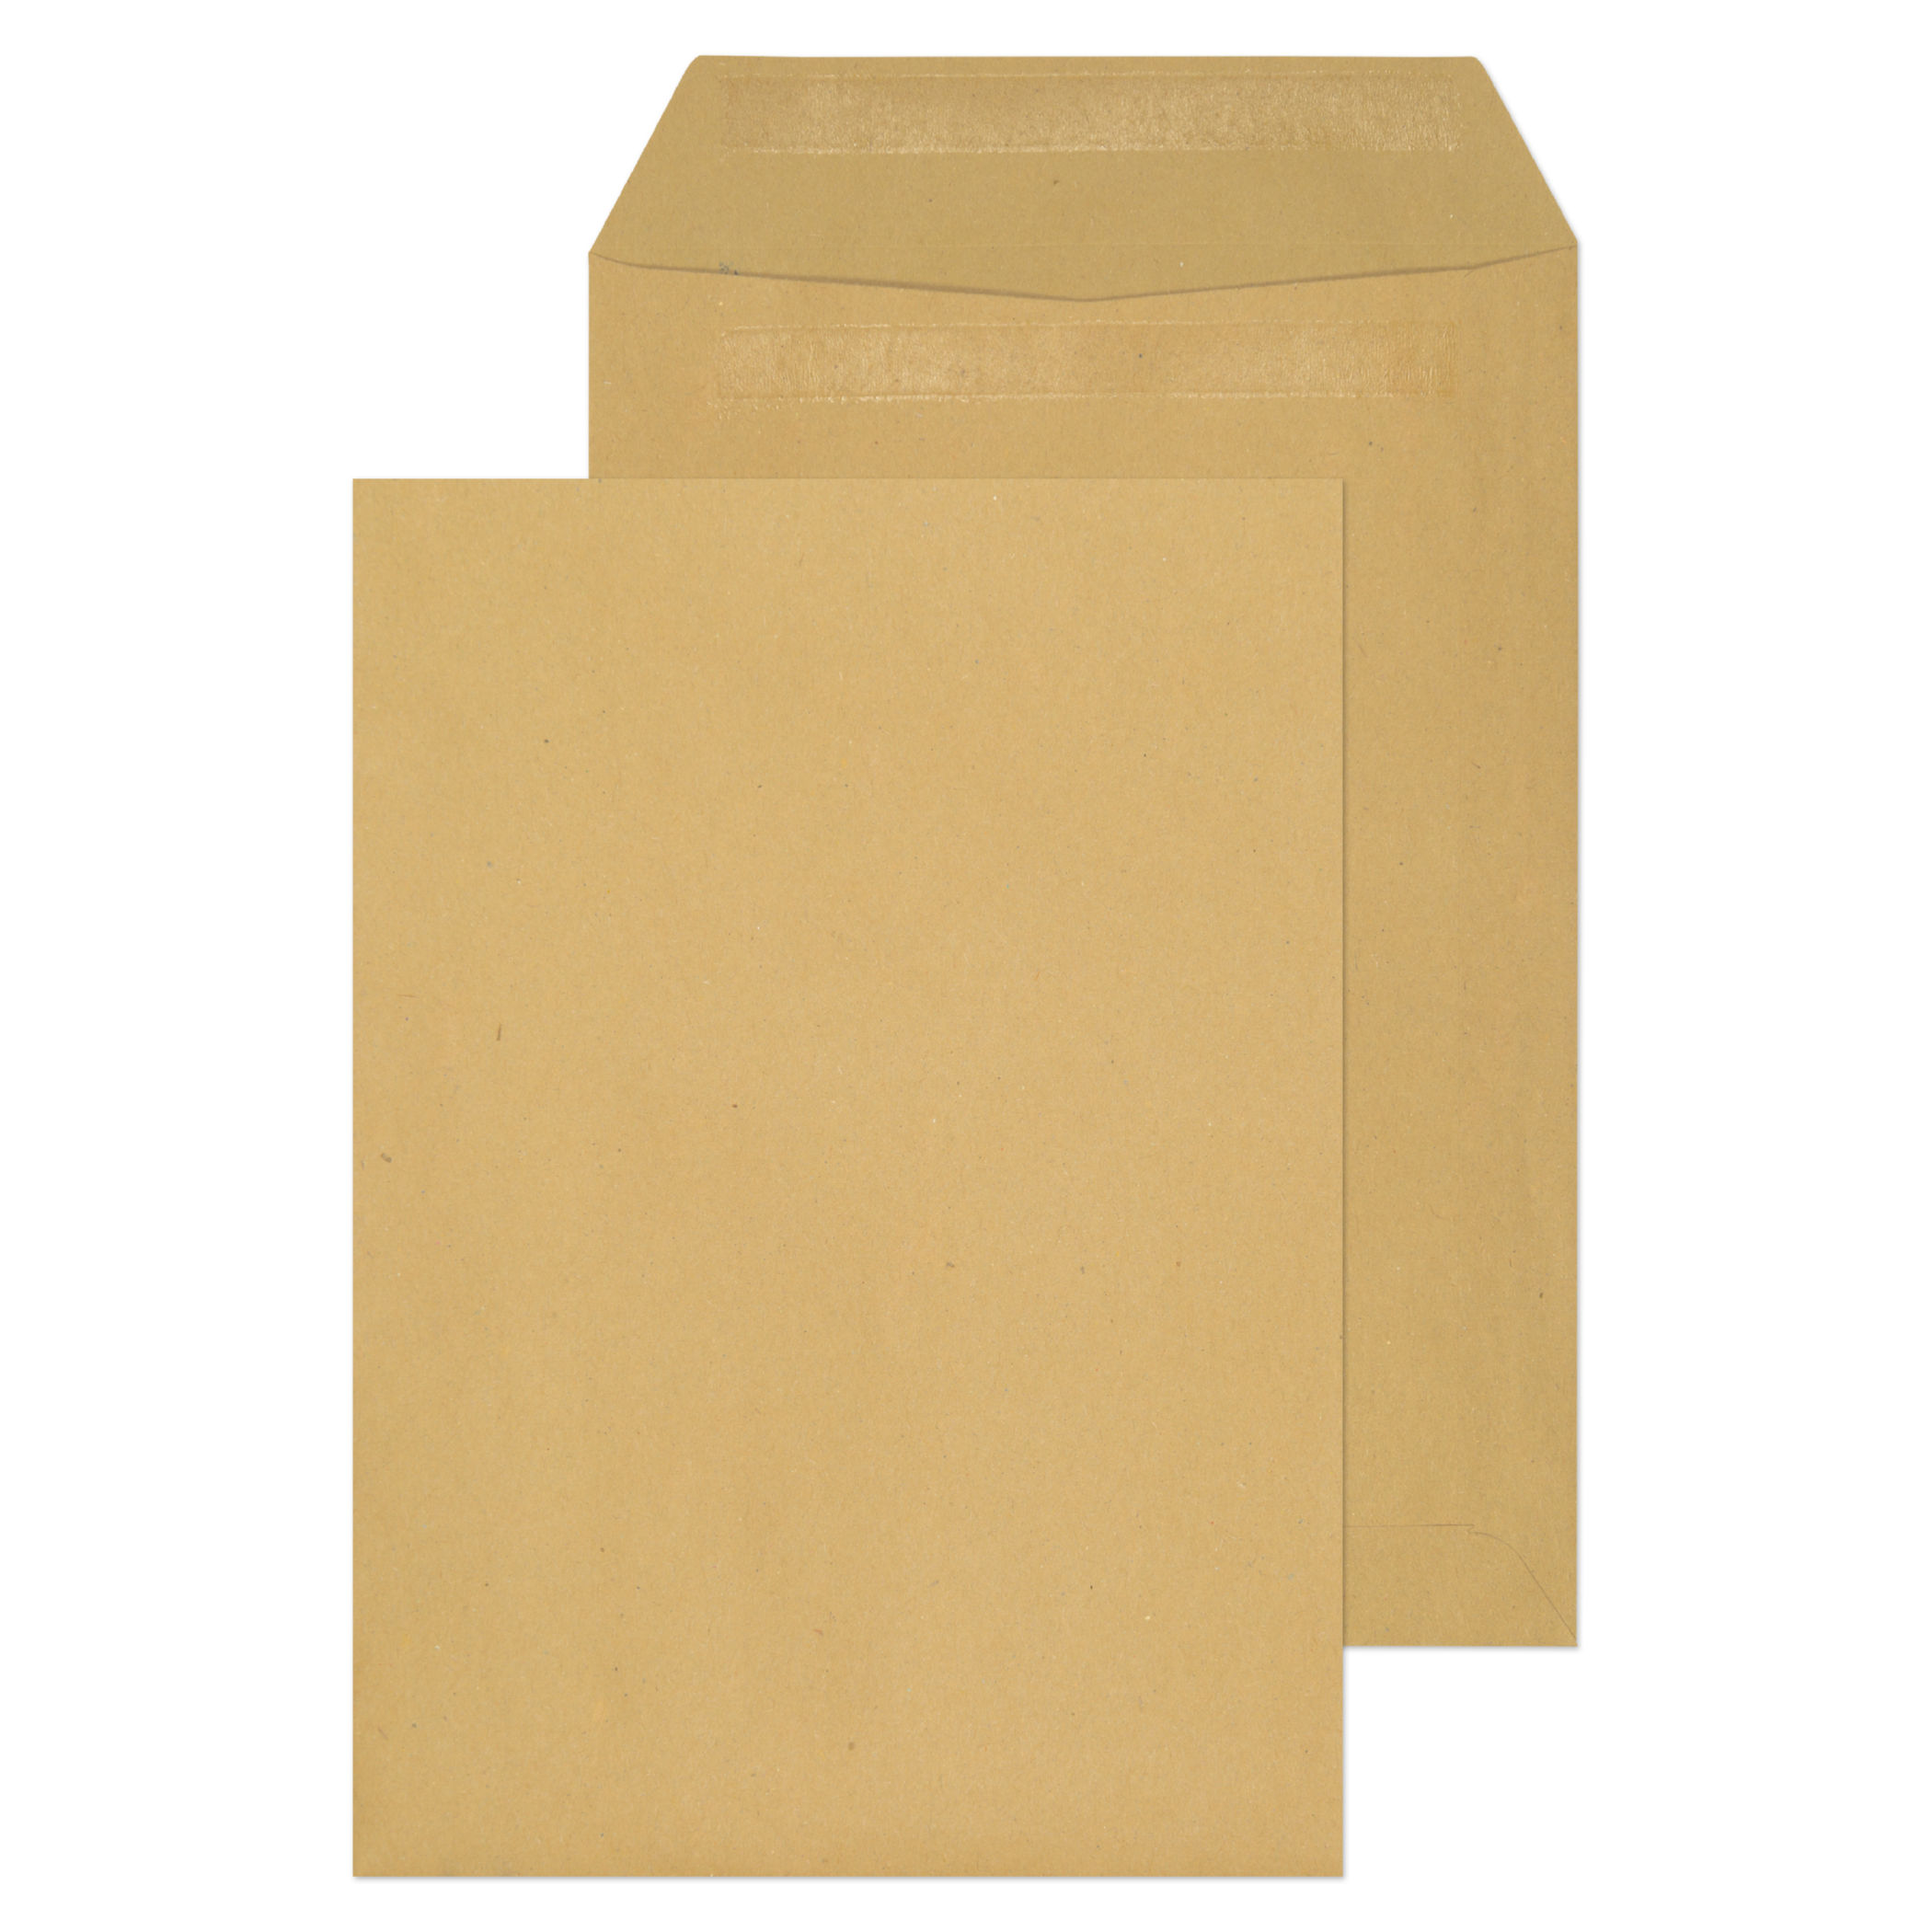 C5 Value Pocket S/S Plain C5 229x162mm 80gsm Manilla PK500